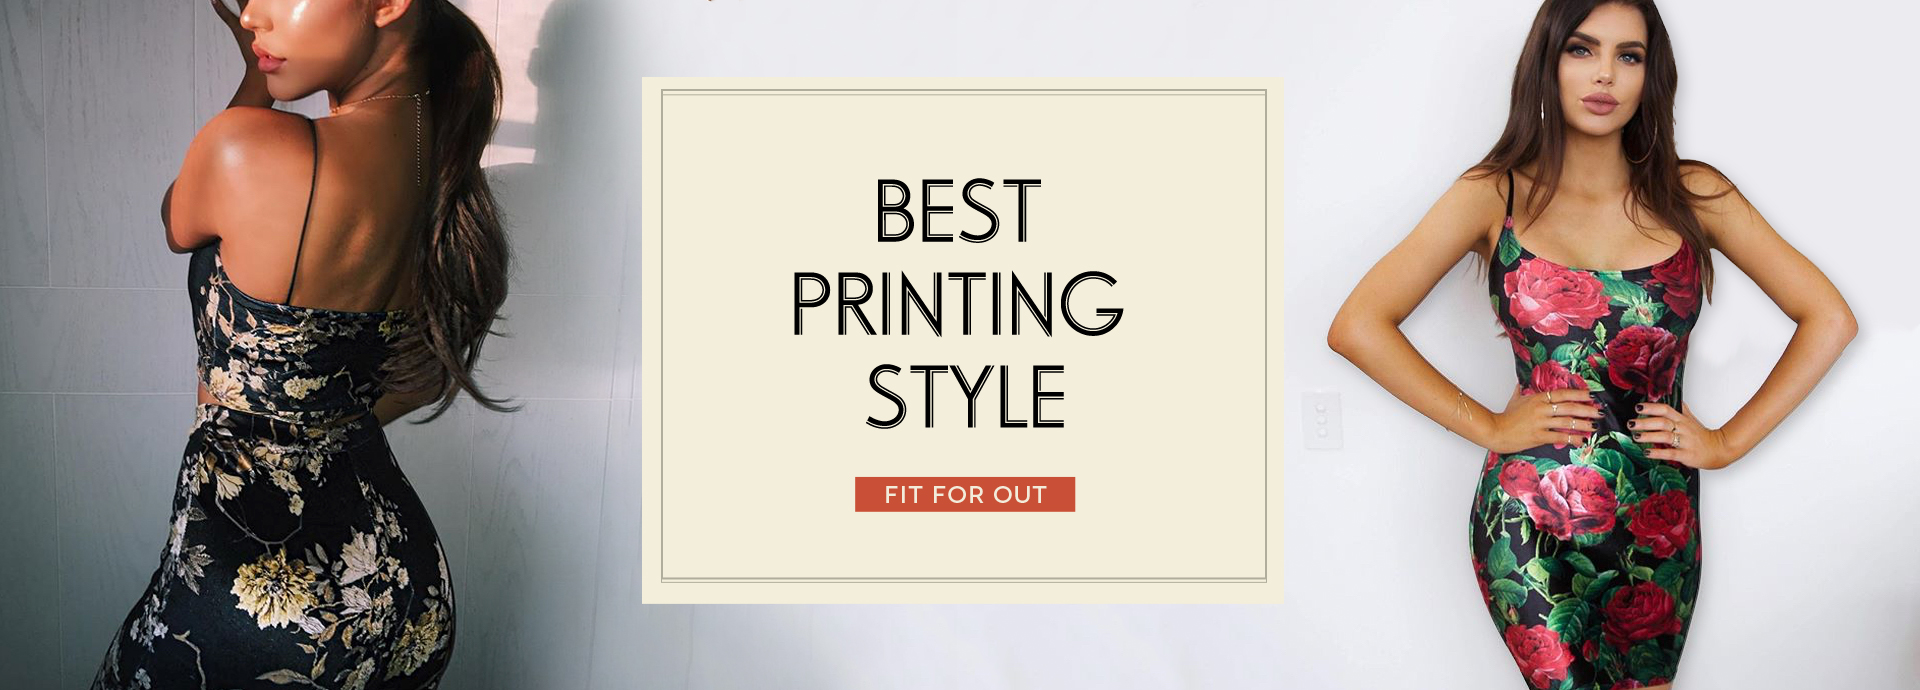 Best Printing Style